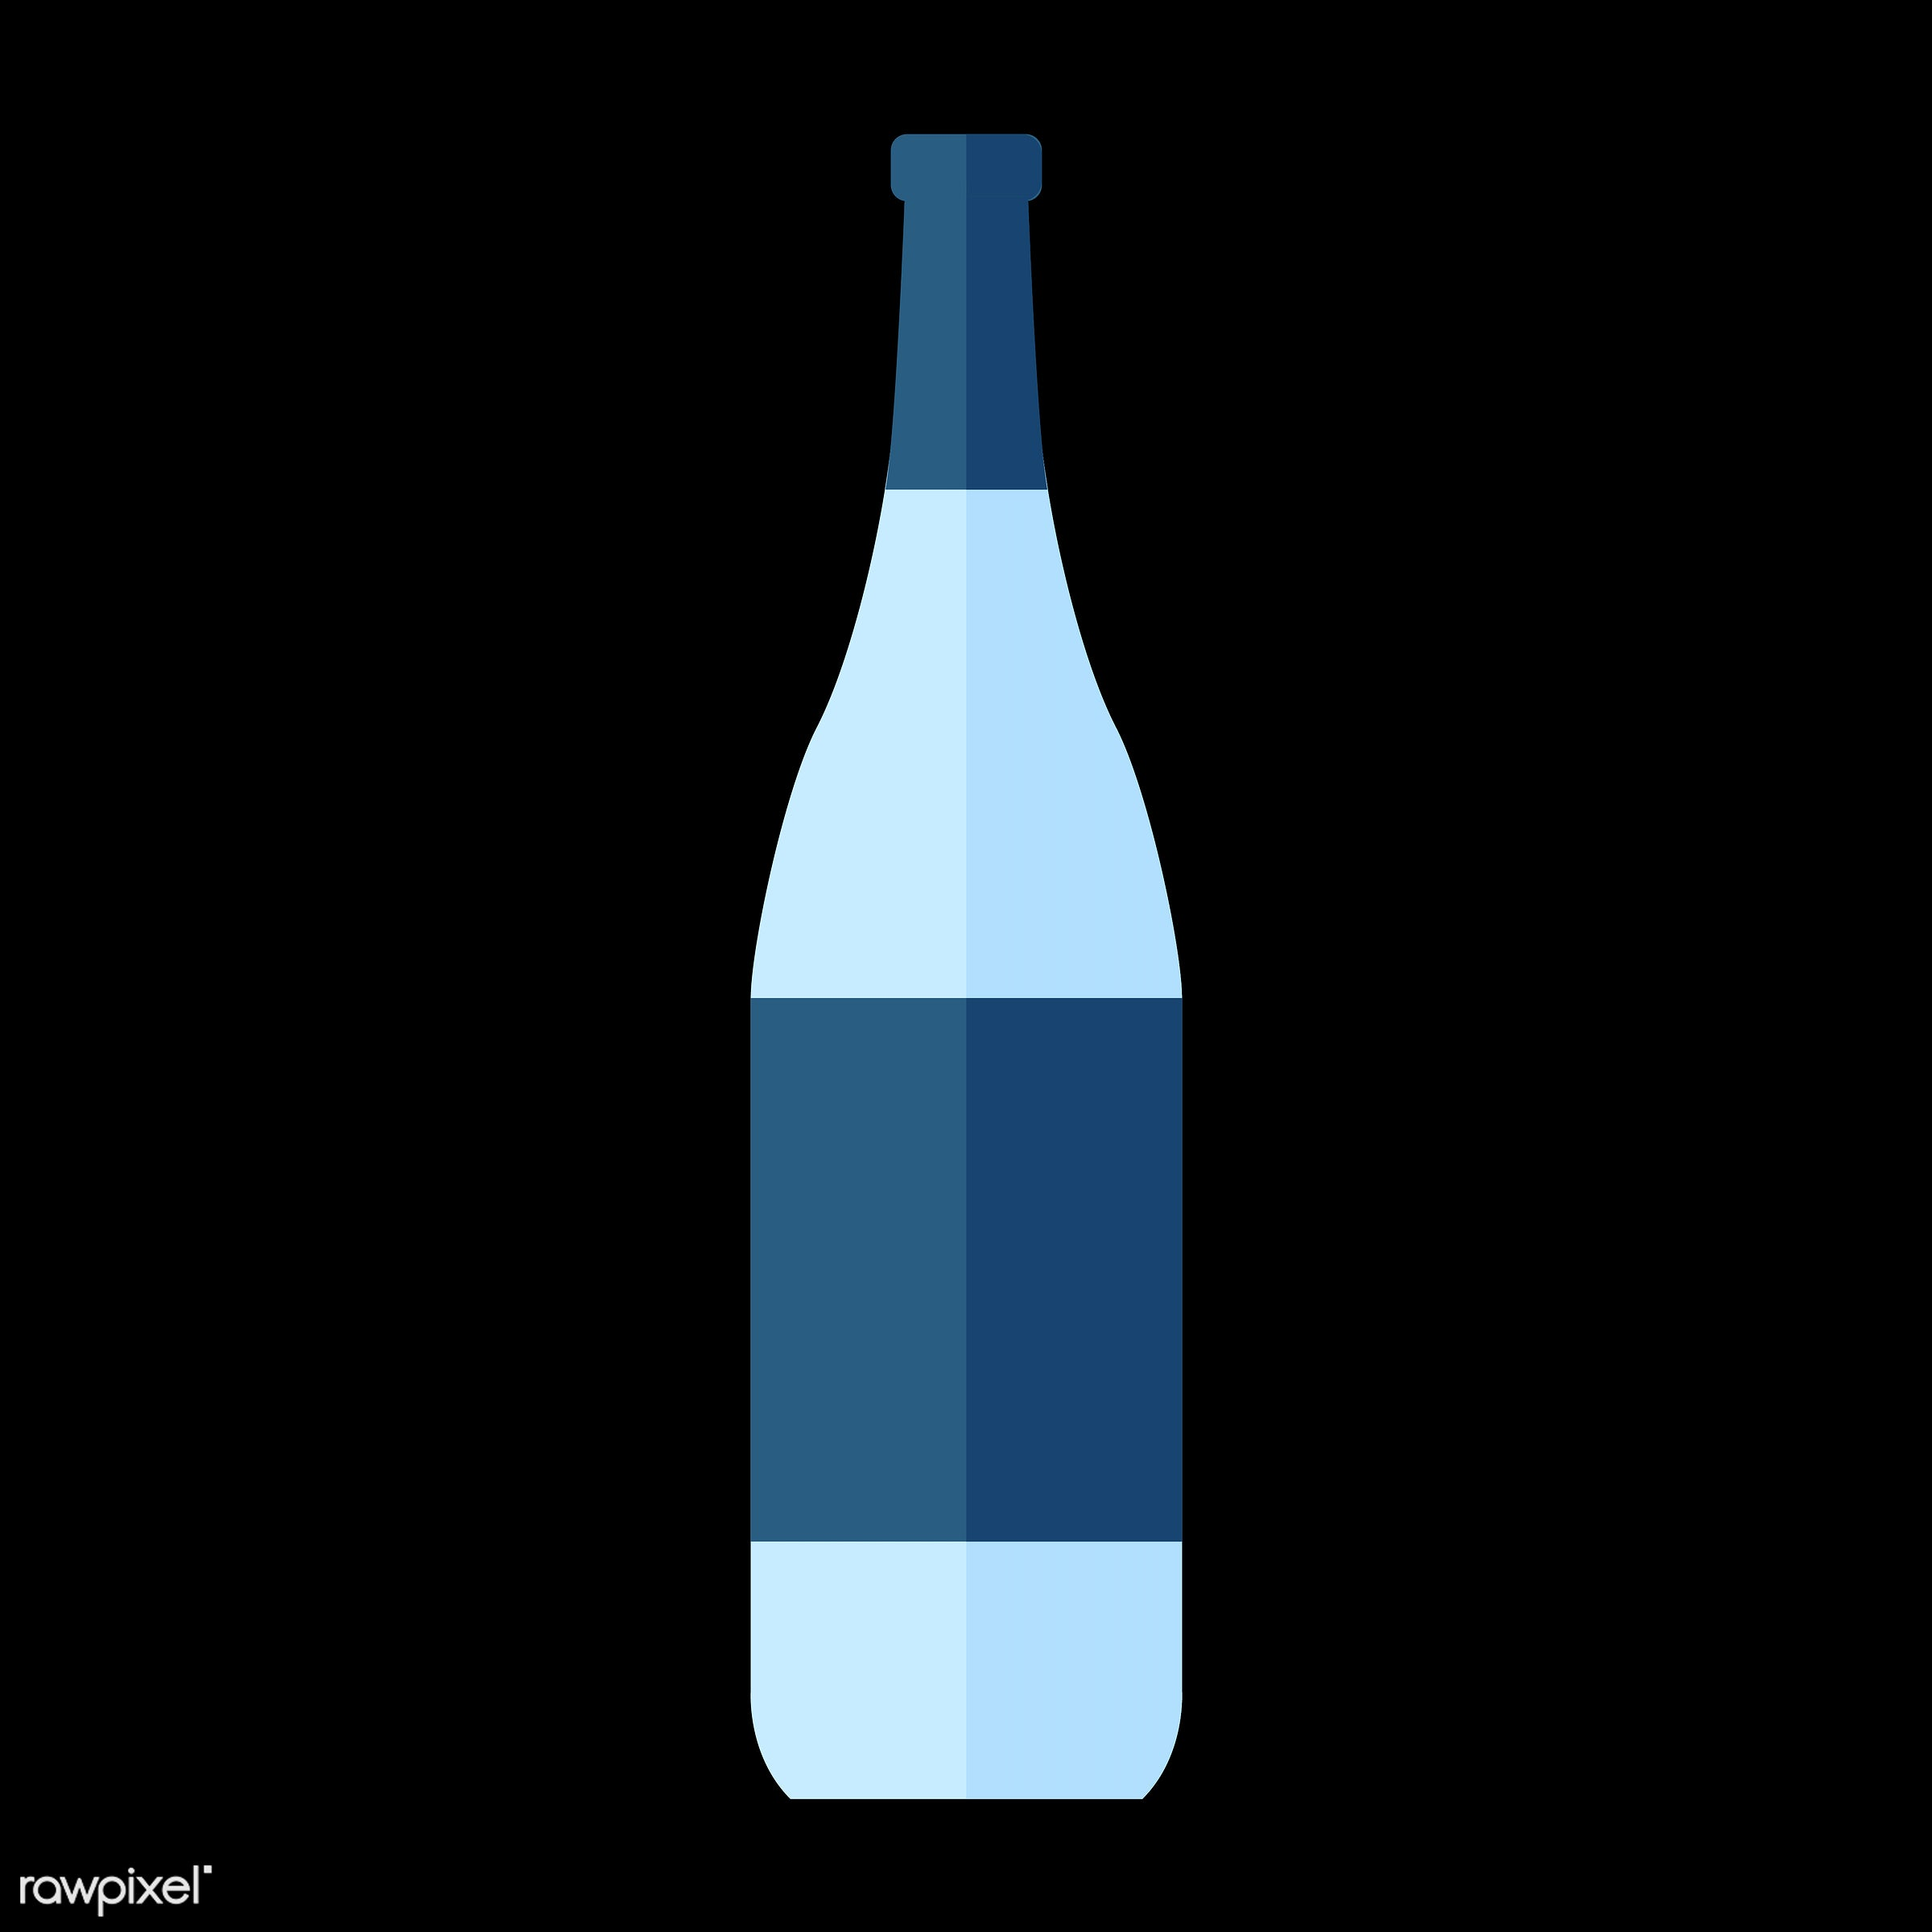 vector, graphic, illustration, icon, symbol, colorful, cute, drink, beverage, water, blue, wine, white wine, wine bottle